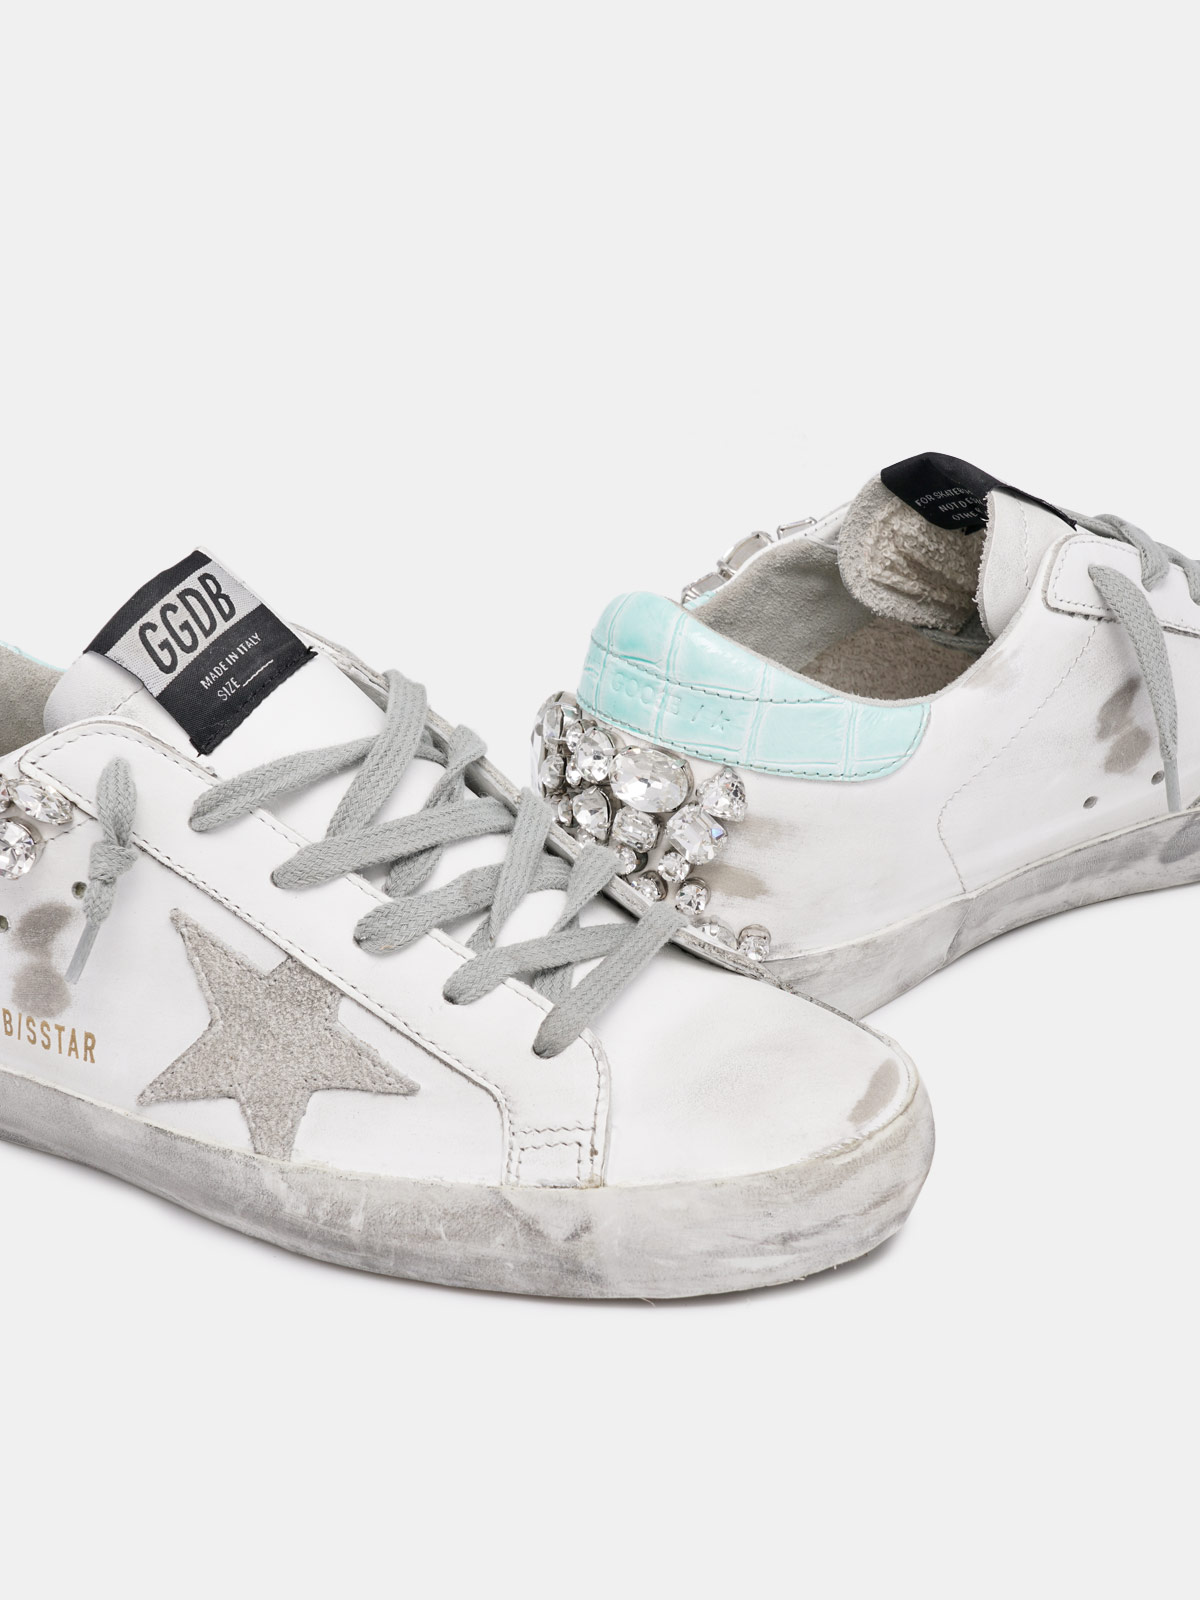 Golden Goose - Super-Star sneakers with crystals on the back   in